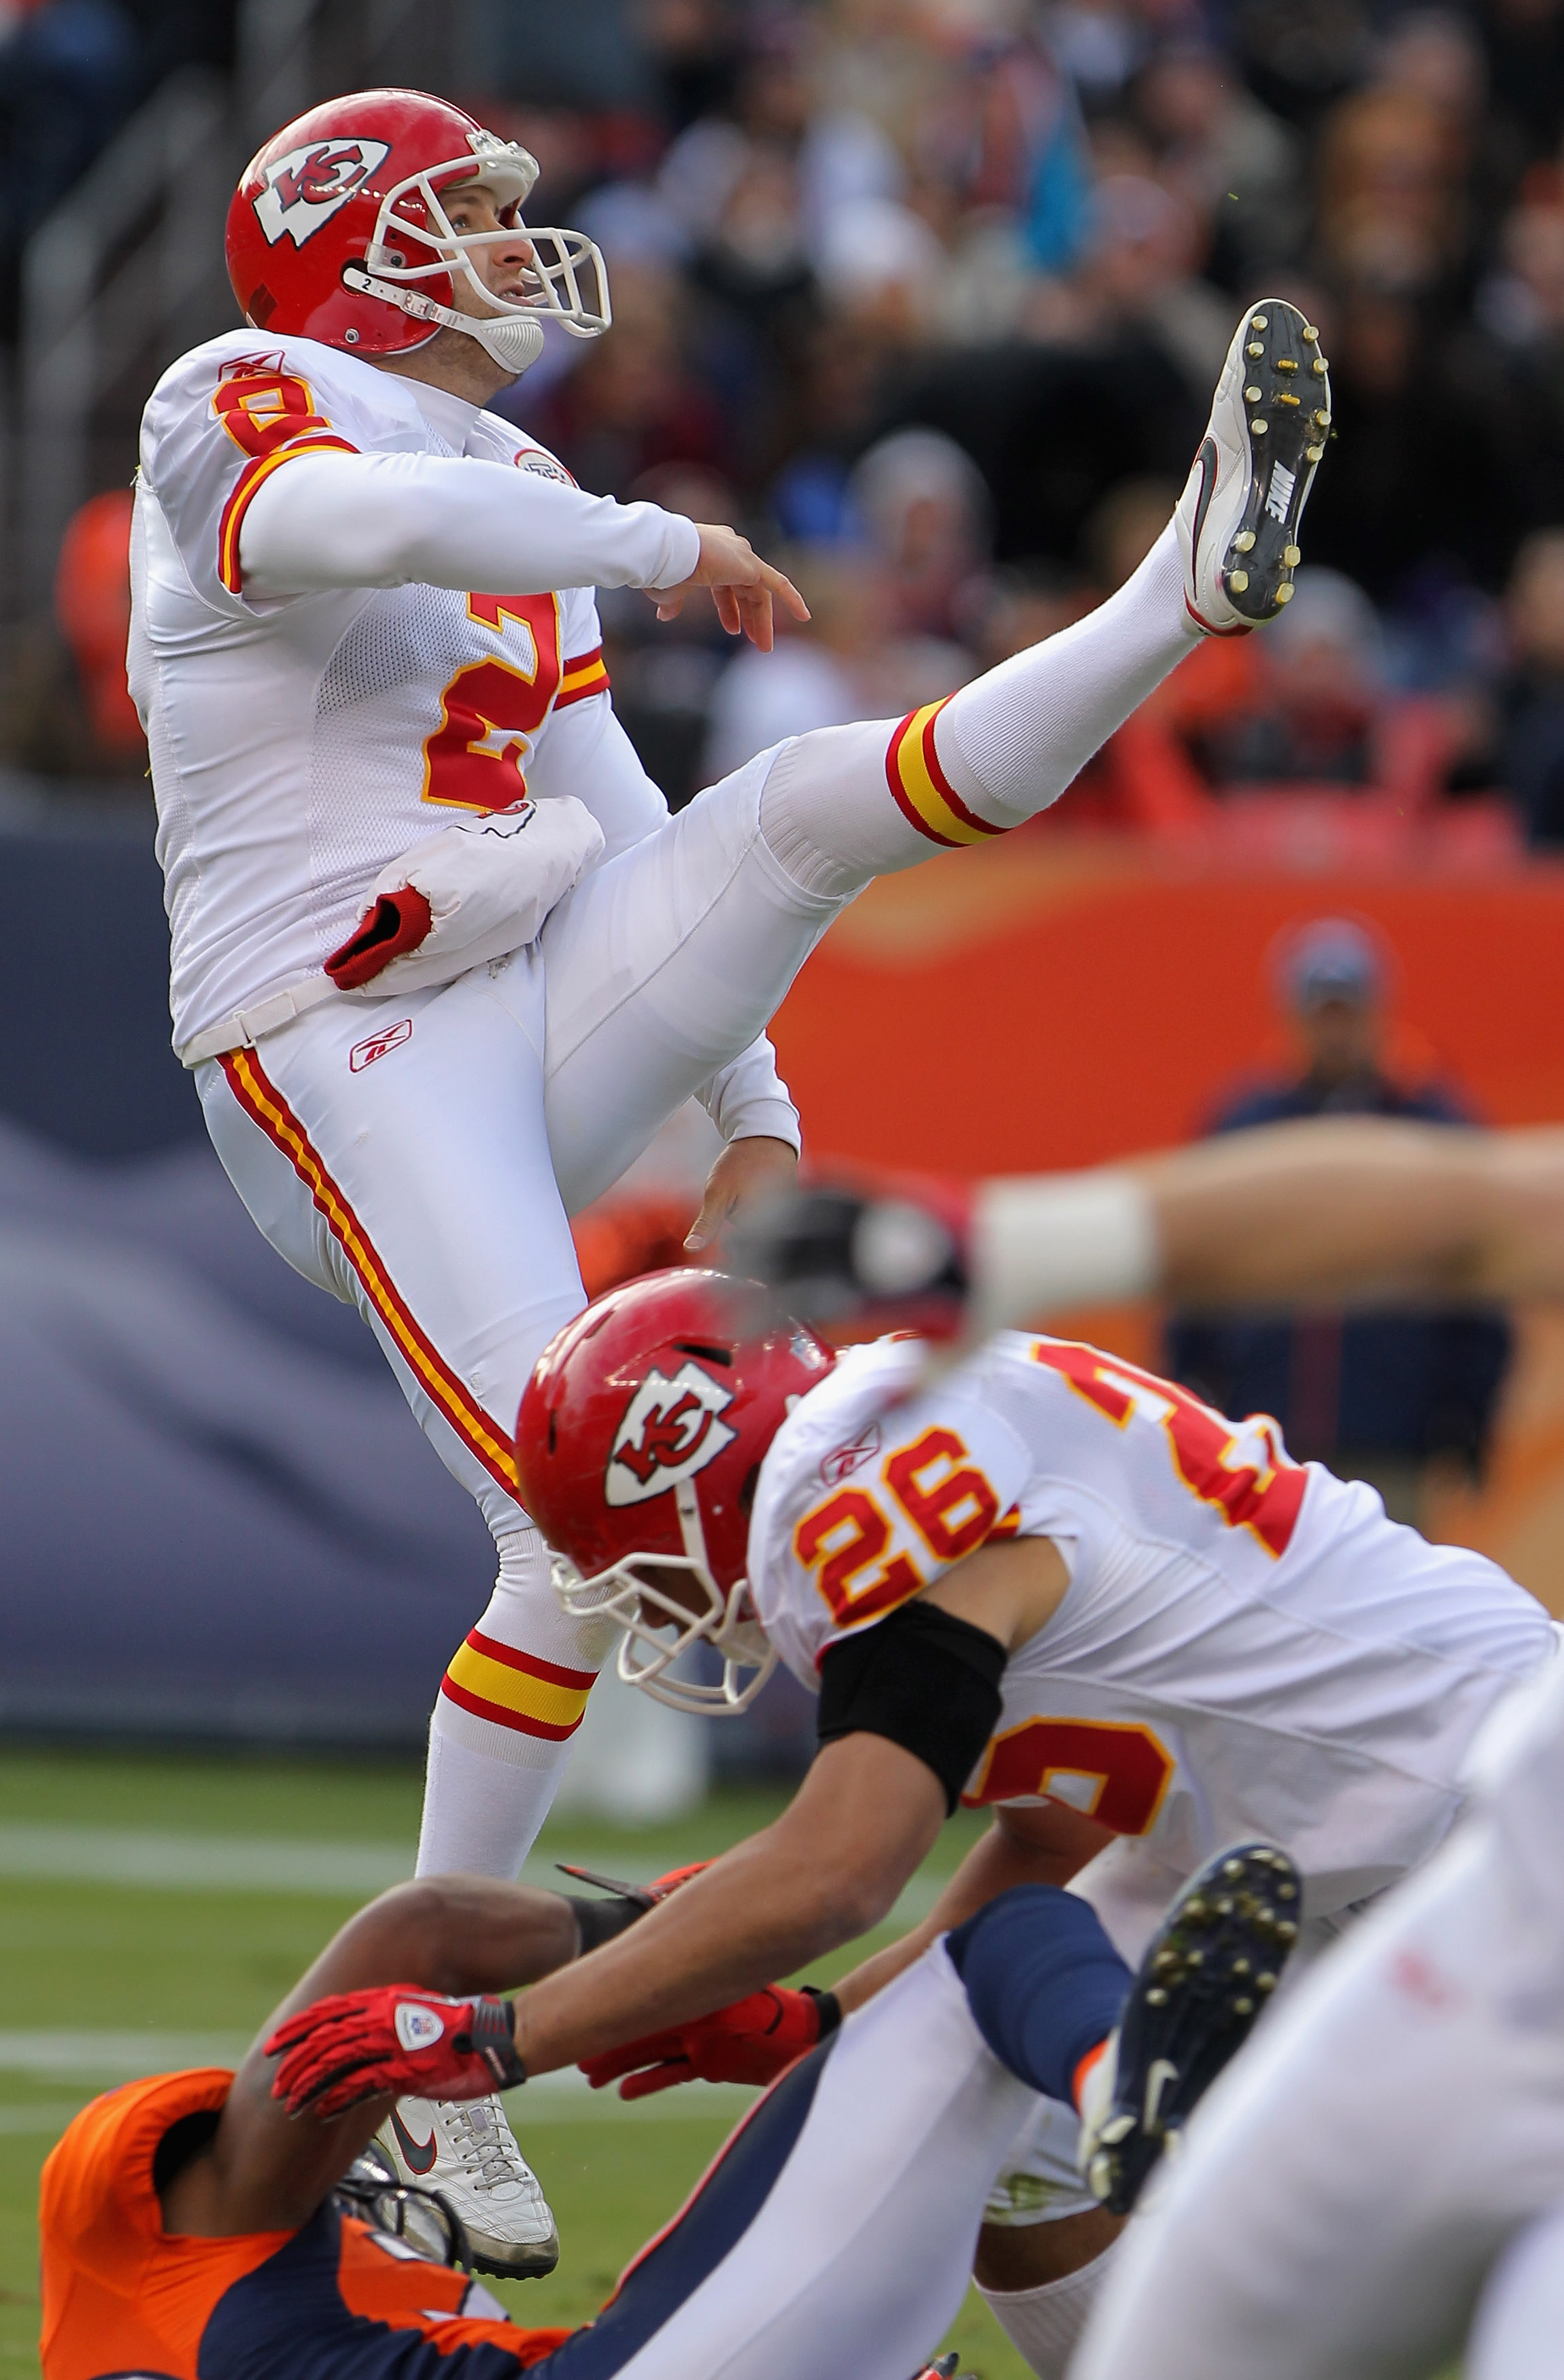 DENVER - NOVEMBER 14:  Punter Dustin Colquitt #2 of the Kansas City Chiefs follows through on a punt against the Denver Bronco at INVESCO Field at Mile High on November 14, 2010 in Denver, Colorado. The Broncos defeated the Chiefs 49-29.  (Photo by Doug P